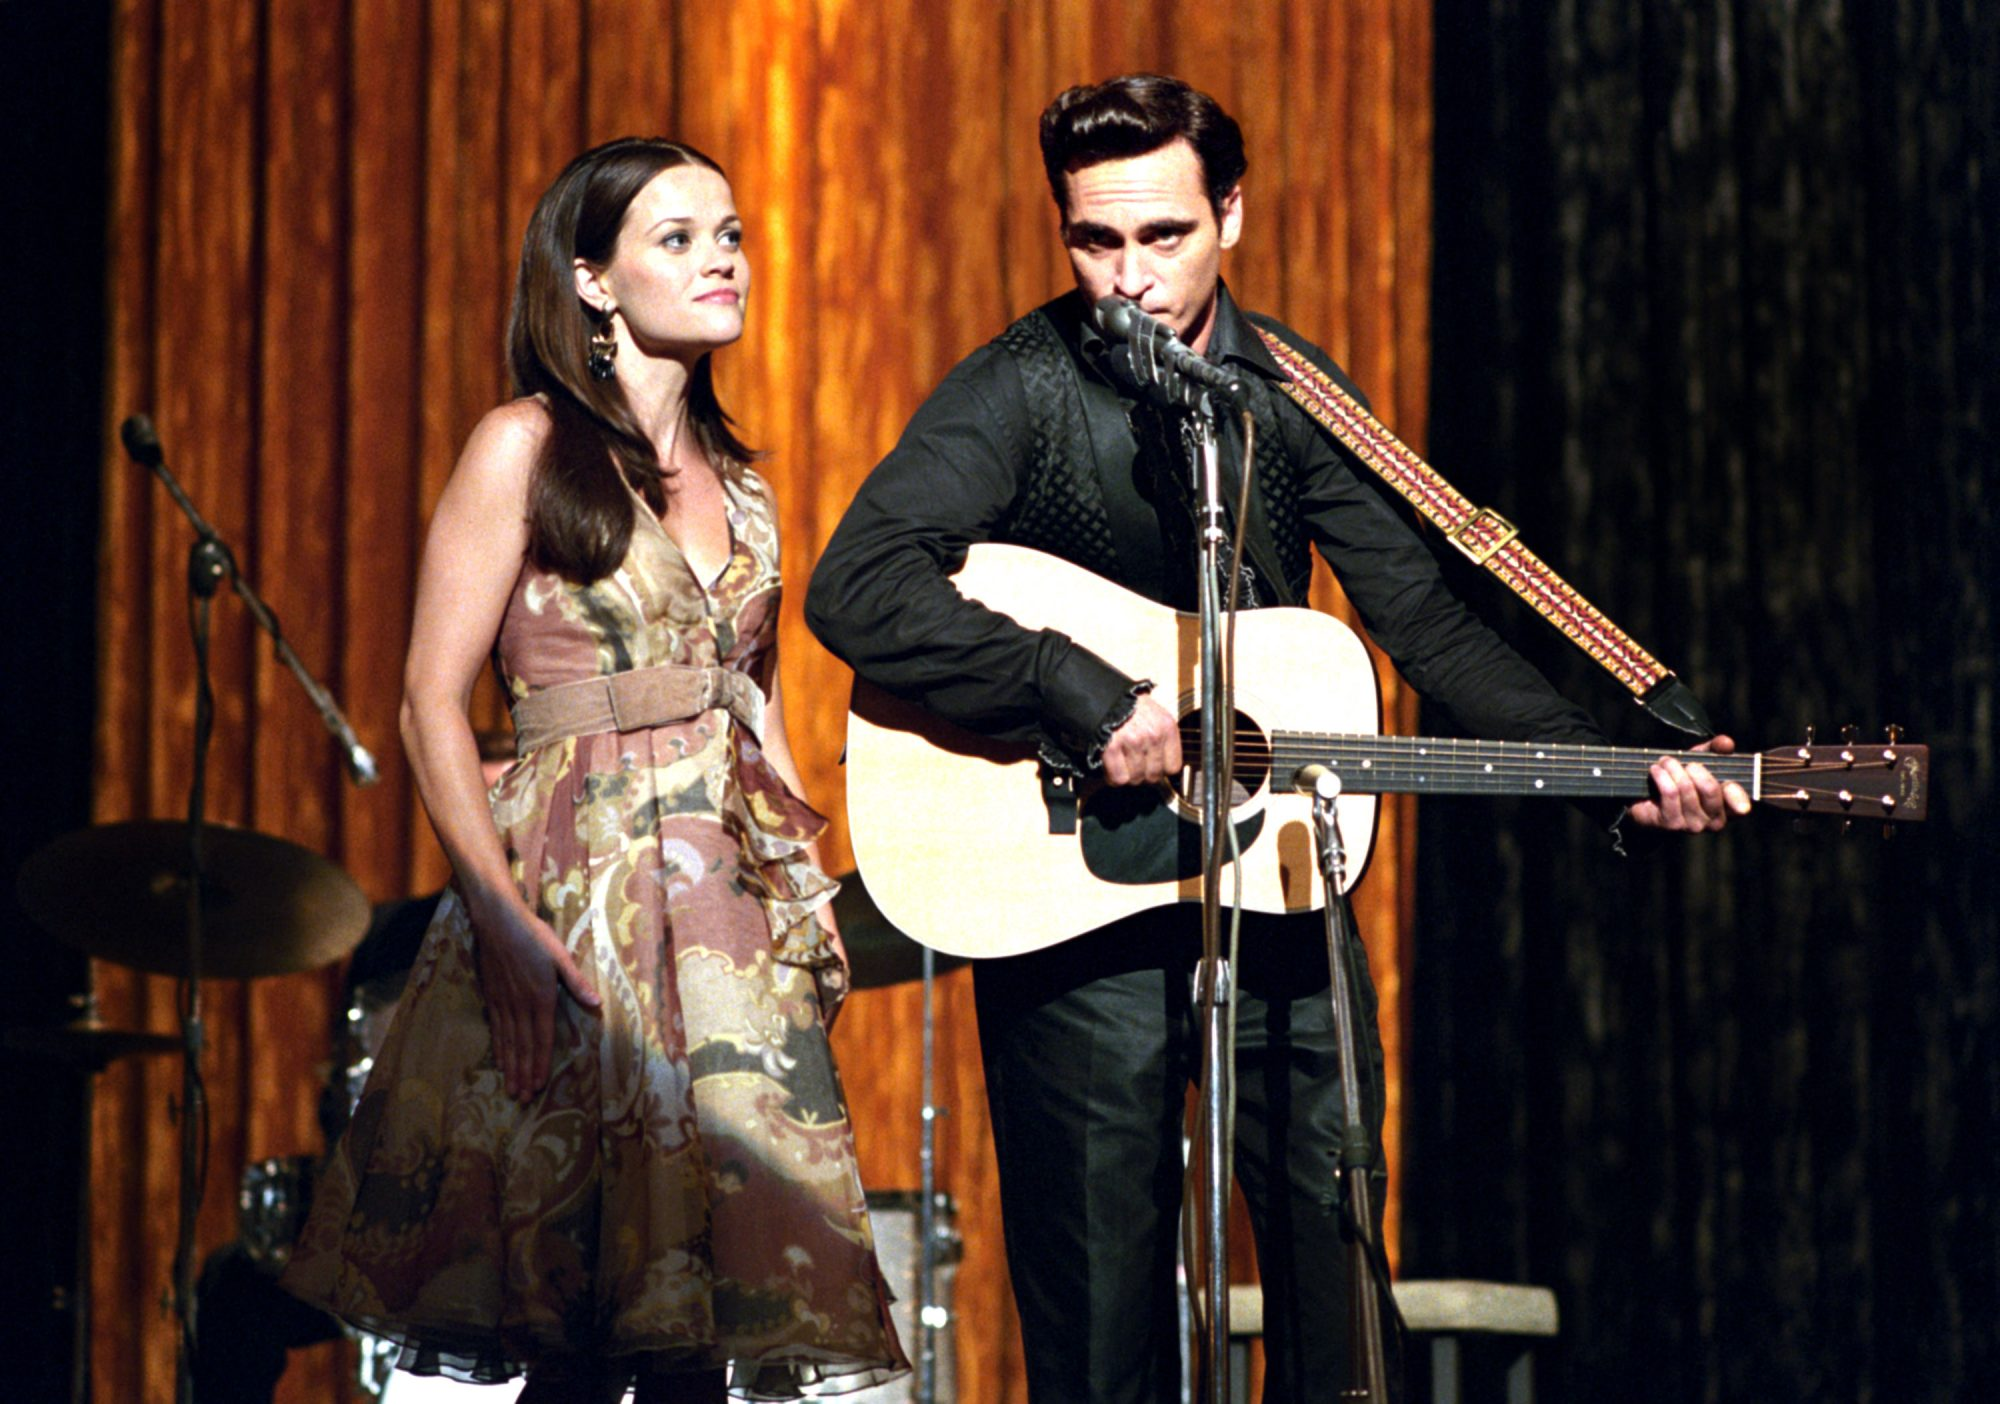 Reese Witherspoon, Joaquin Phoenix in wALK THE LINE